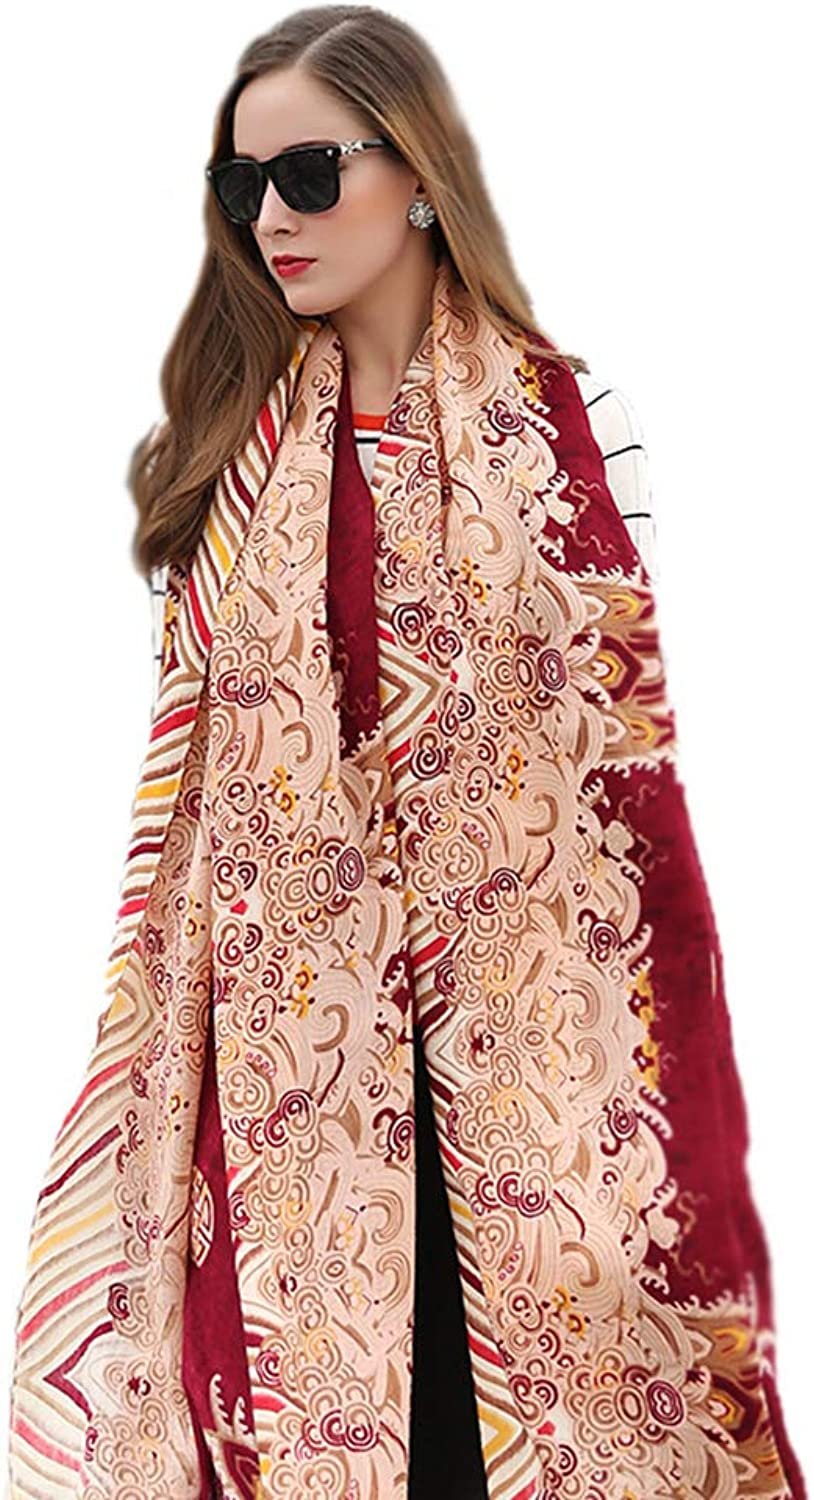 Wraps & Pashminas Wool Scarf Ladies Long Scarf Autumn and Winter Scarf Ethnic Wind Shawl Oversized Shawl Travel Shawl Dual Purpose (color   Red, Size   245  110cm)